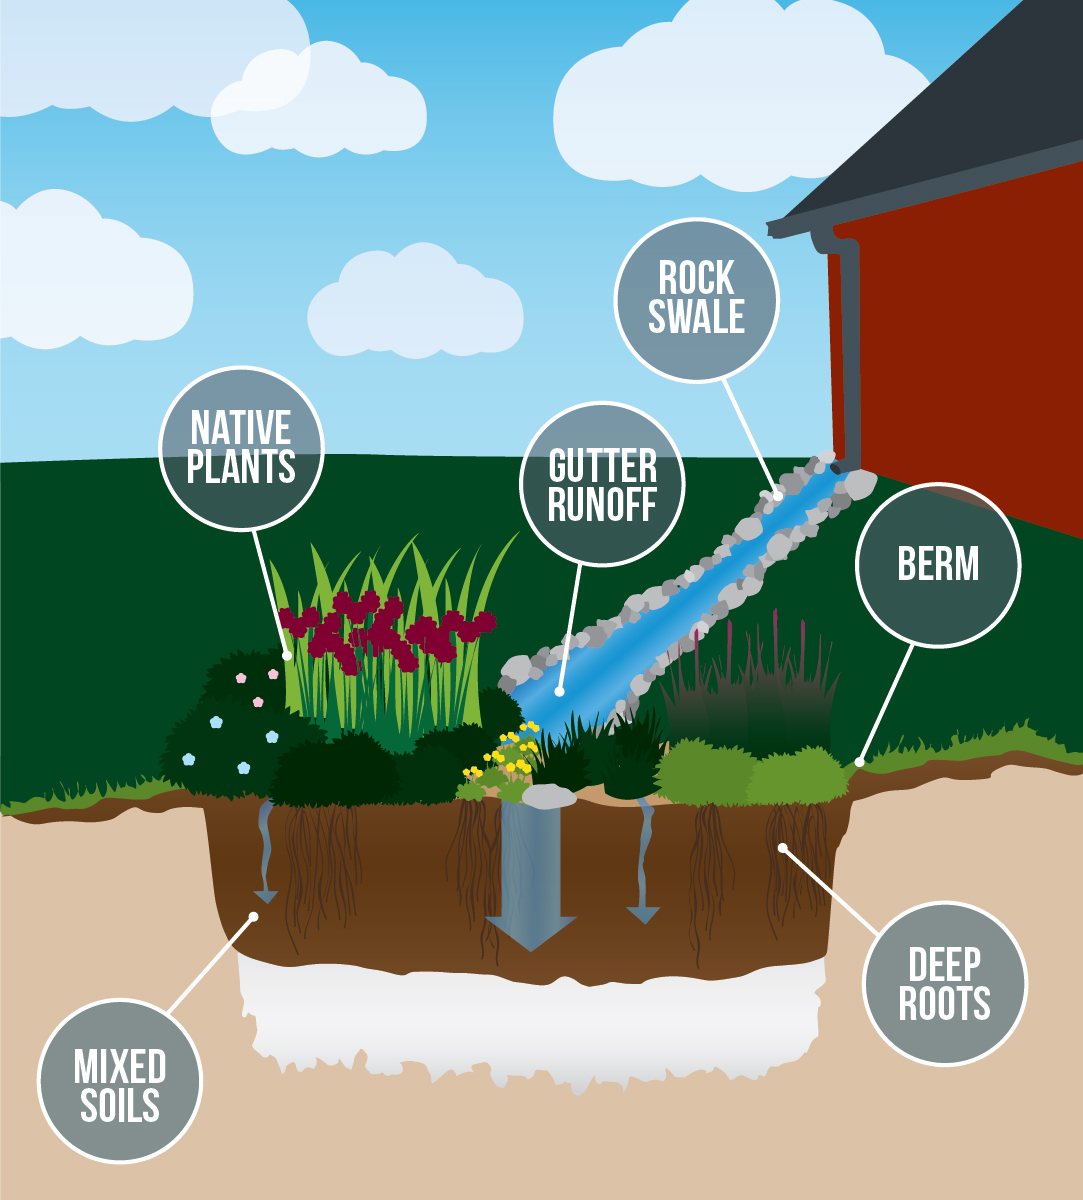 illustration showing the components of a rain garden including native plants